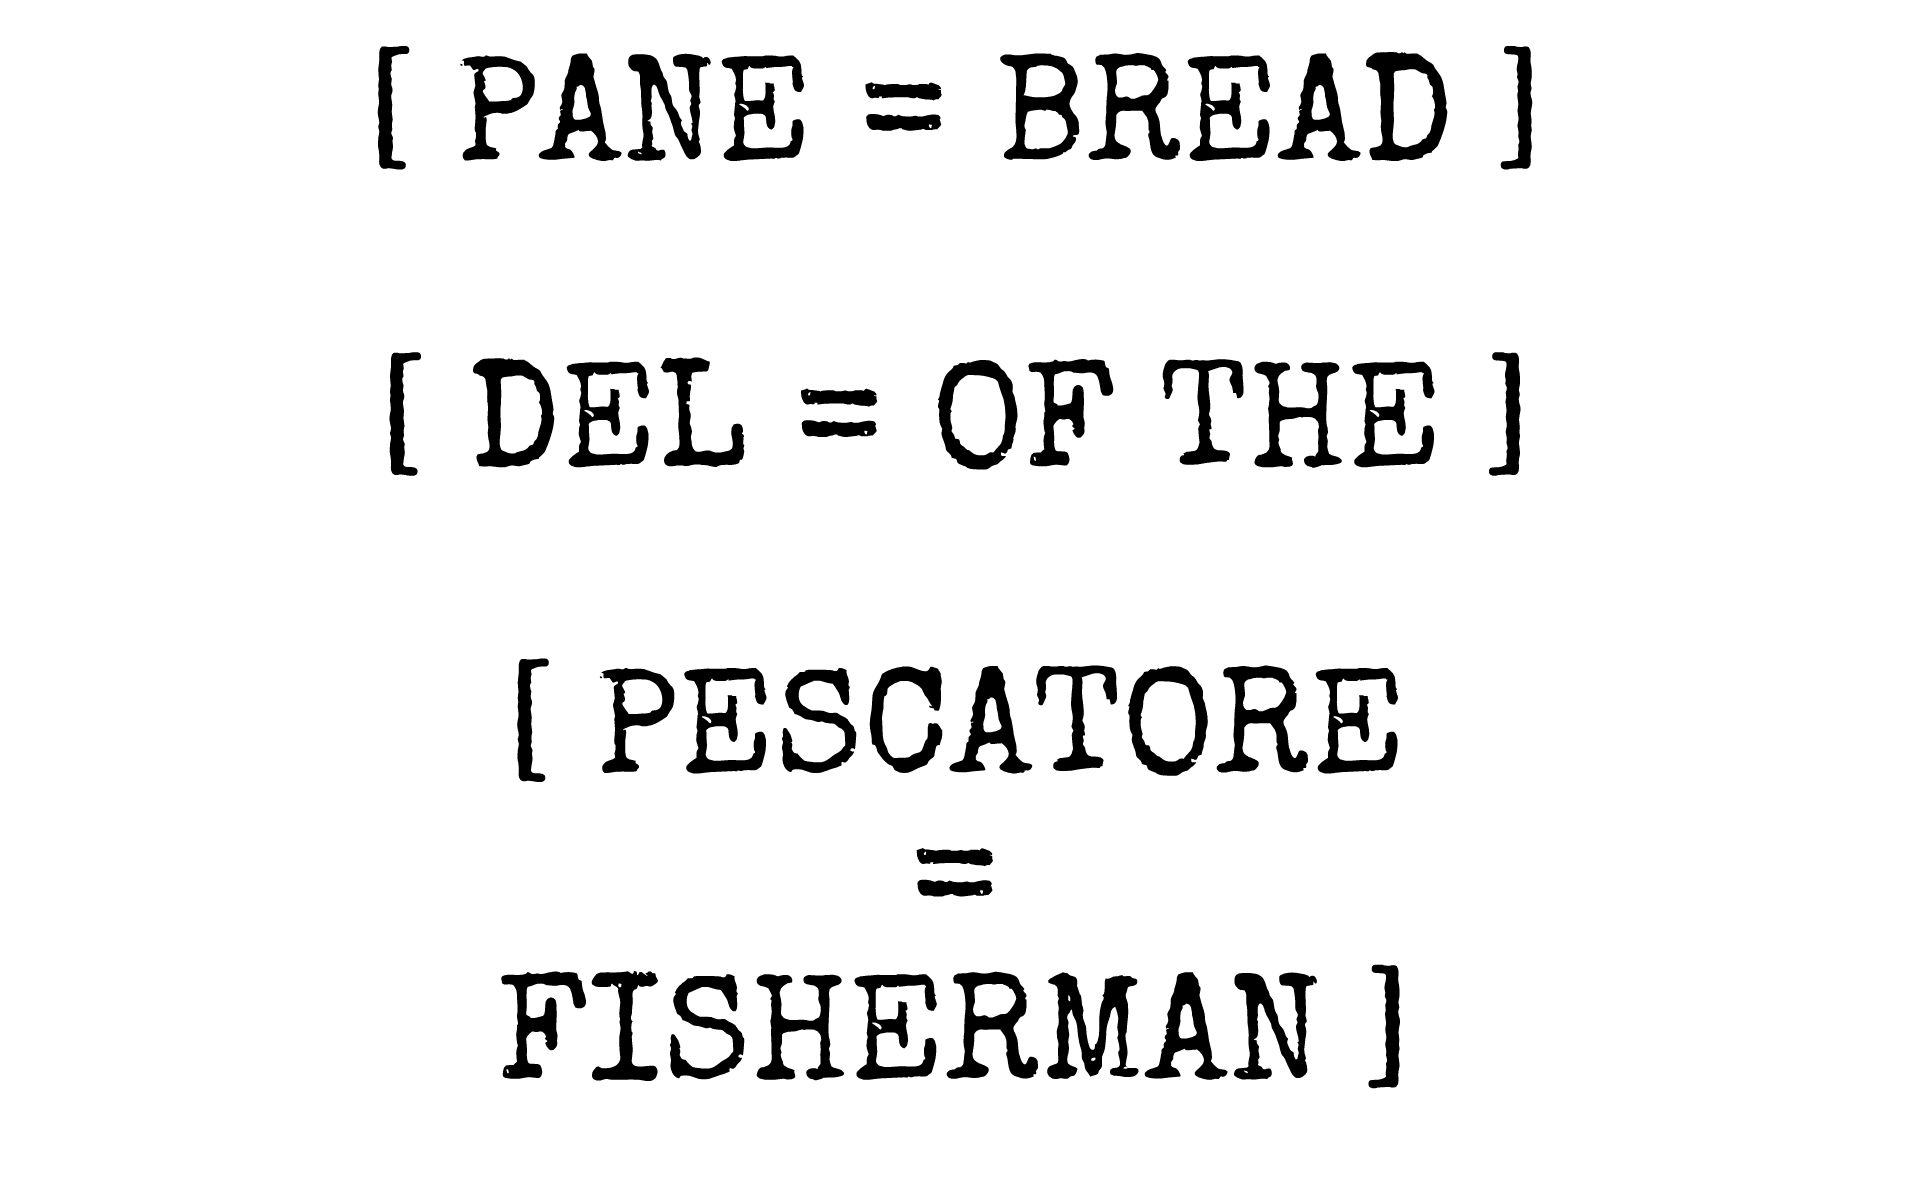 BREAD OF THE FISHERMAN FOODS OF FLORENCE